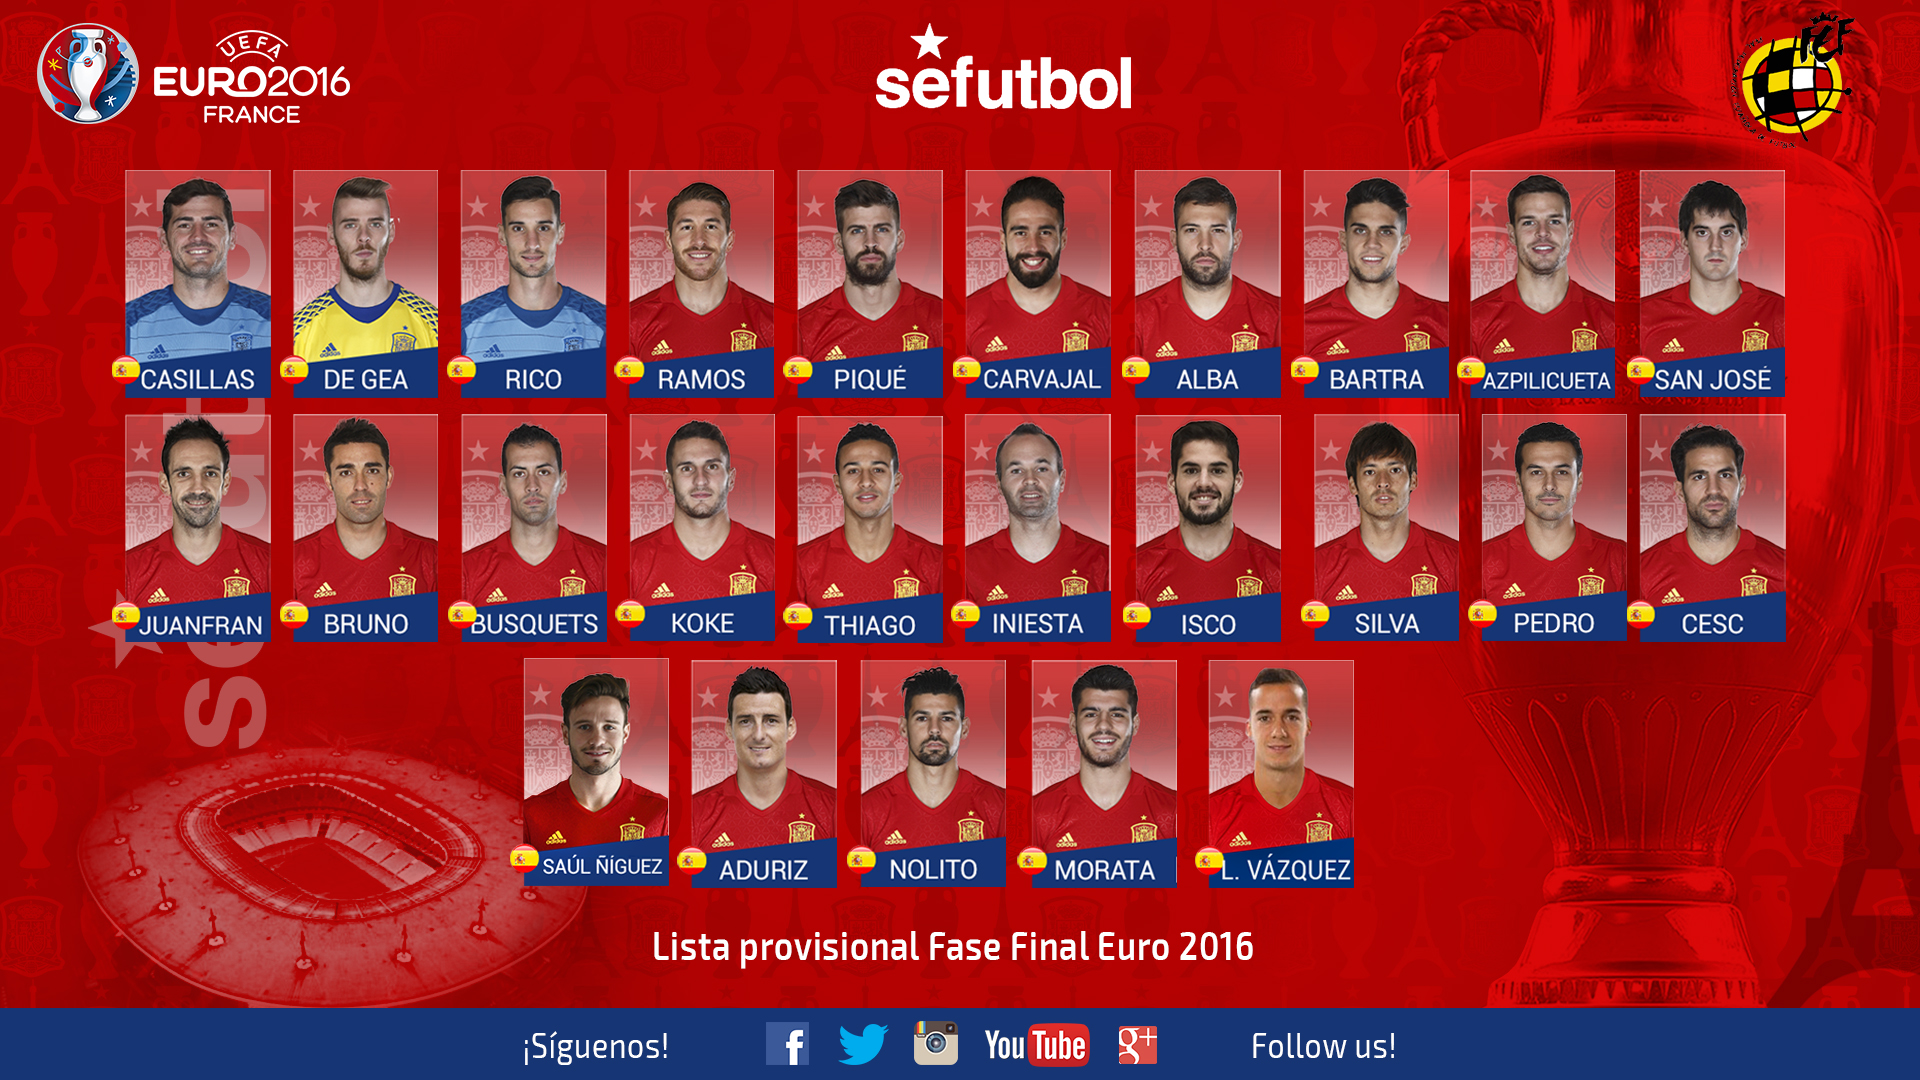 OFFICIAL | Spain unveil provisional Euro 2016 squad | SEFutbol